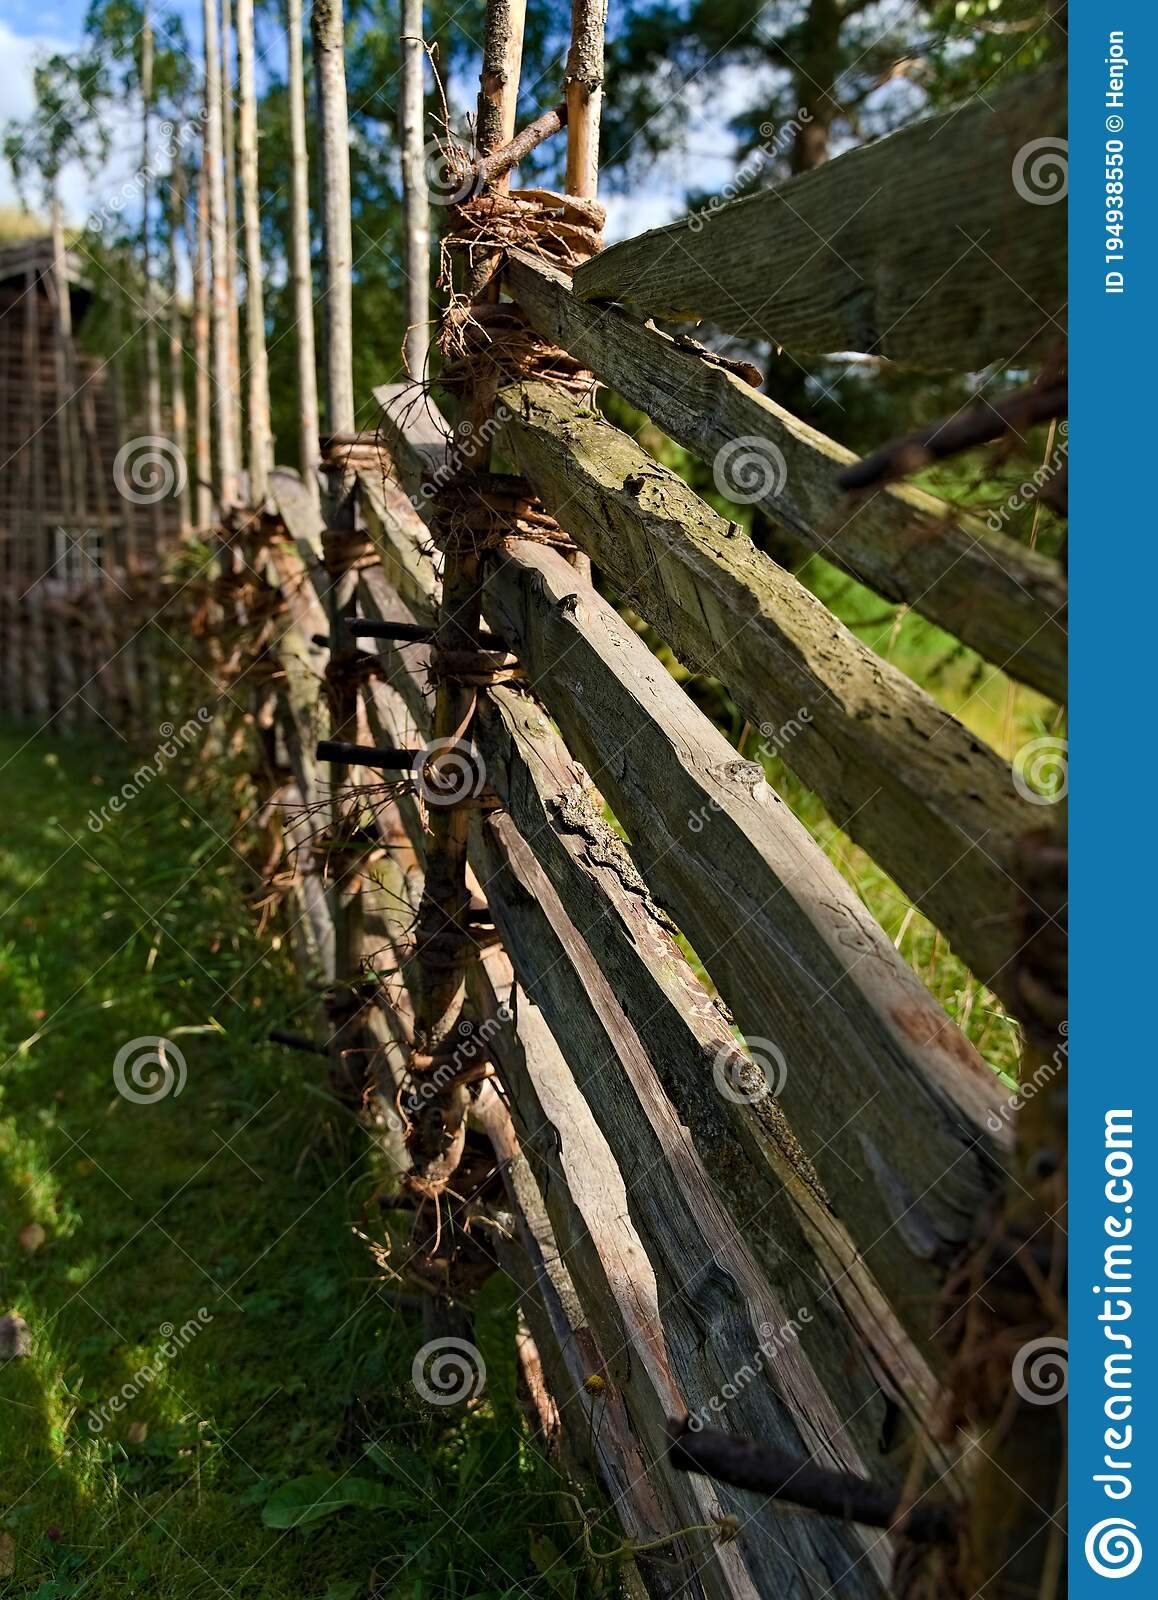 Willow Branch Fence With Wooden Poles Stock Photo Image Of Binding Nordic 194938550